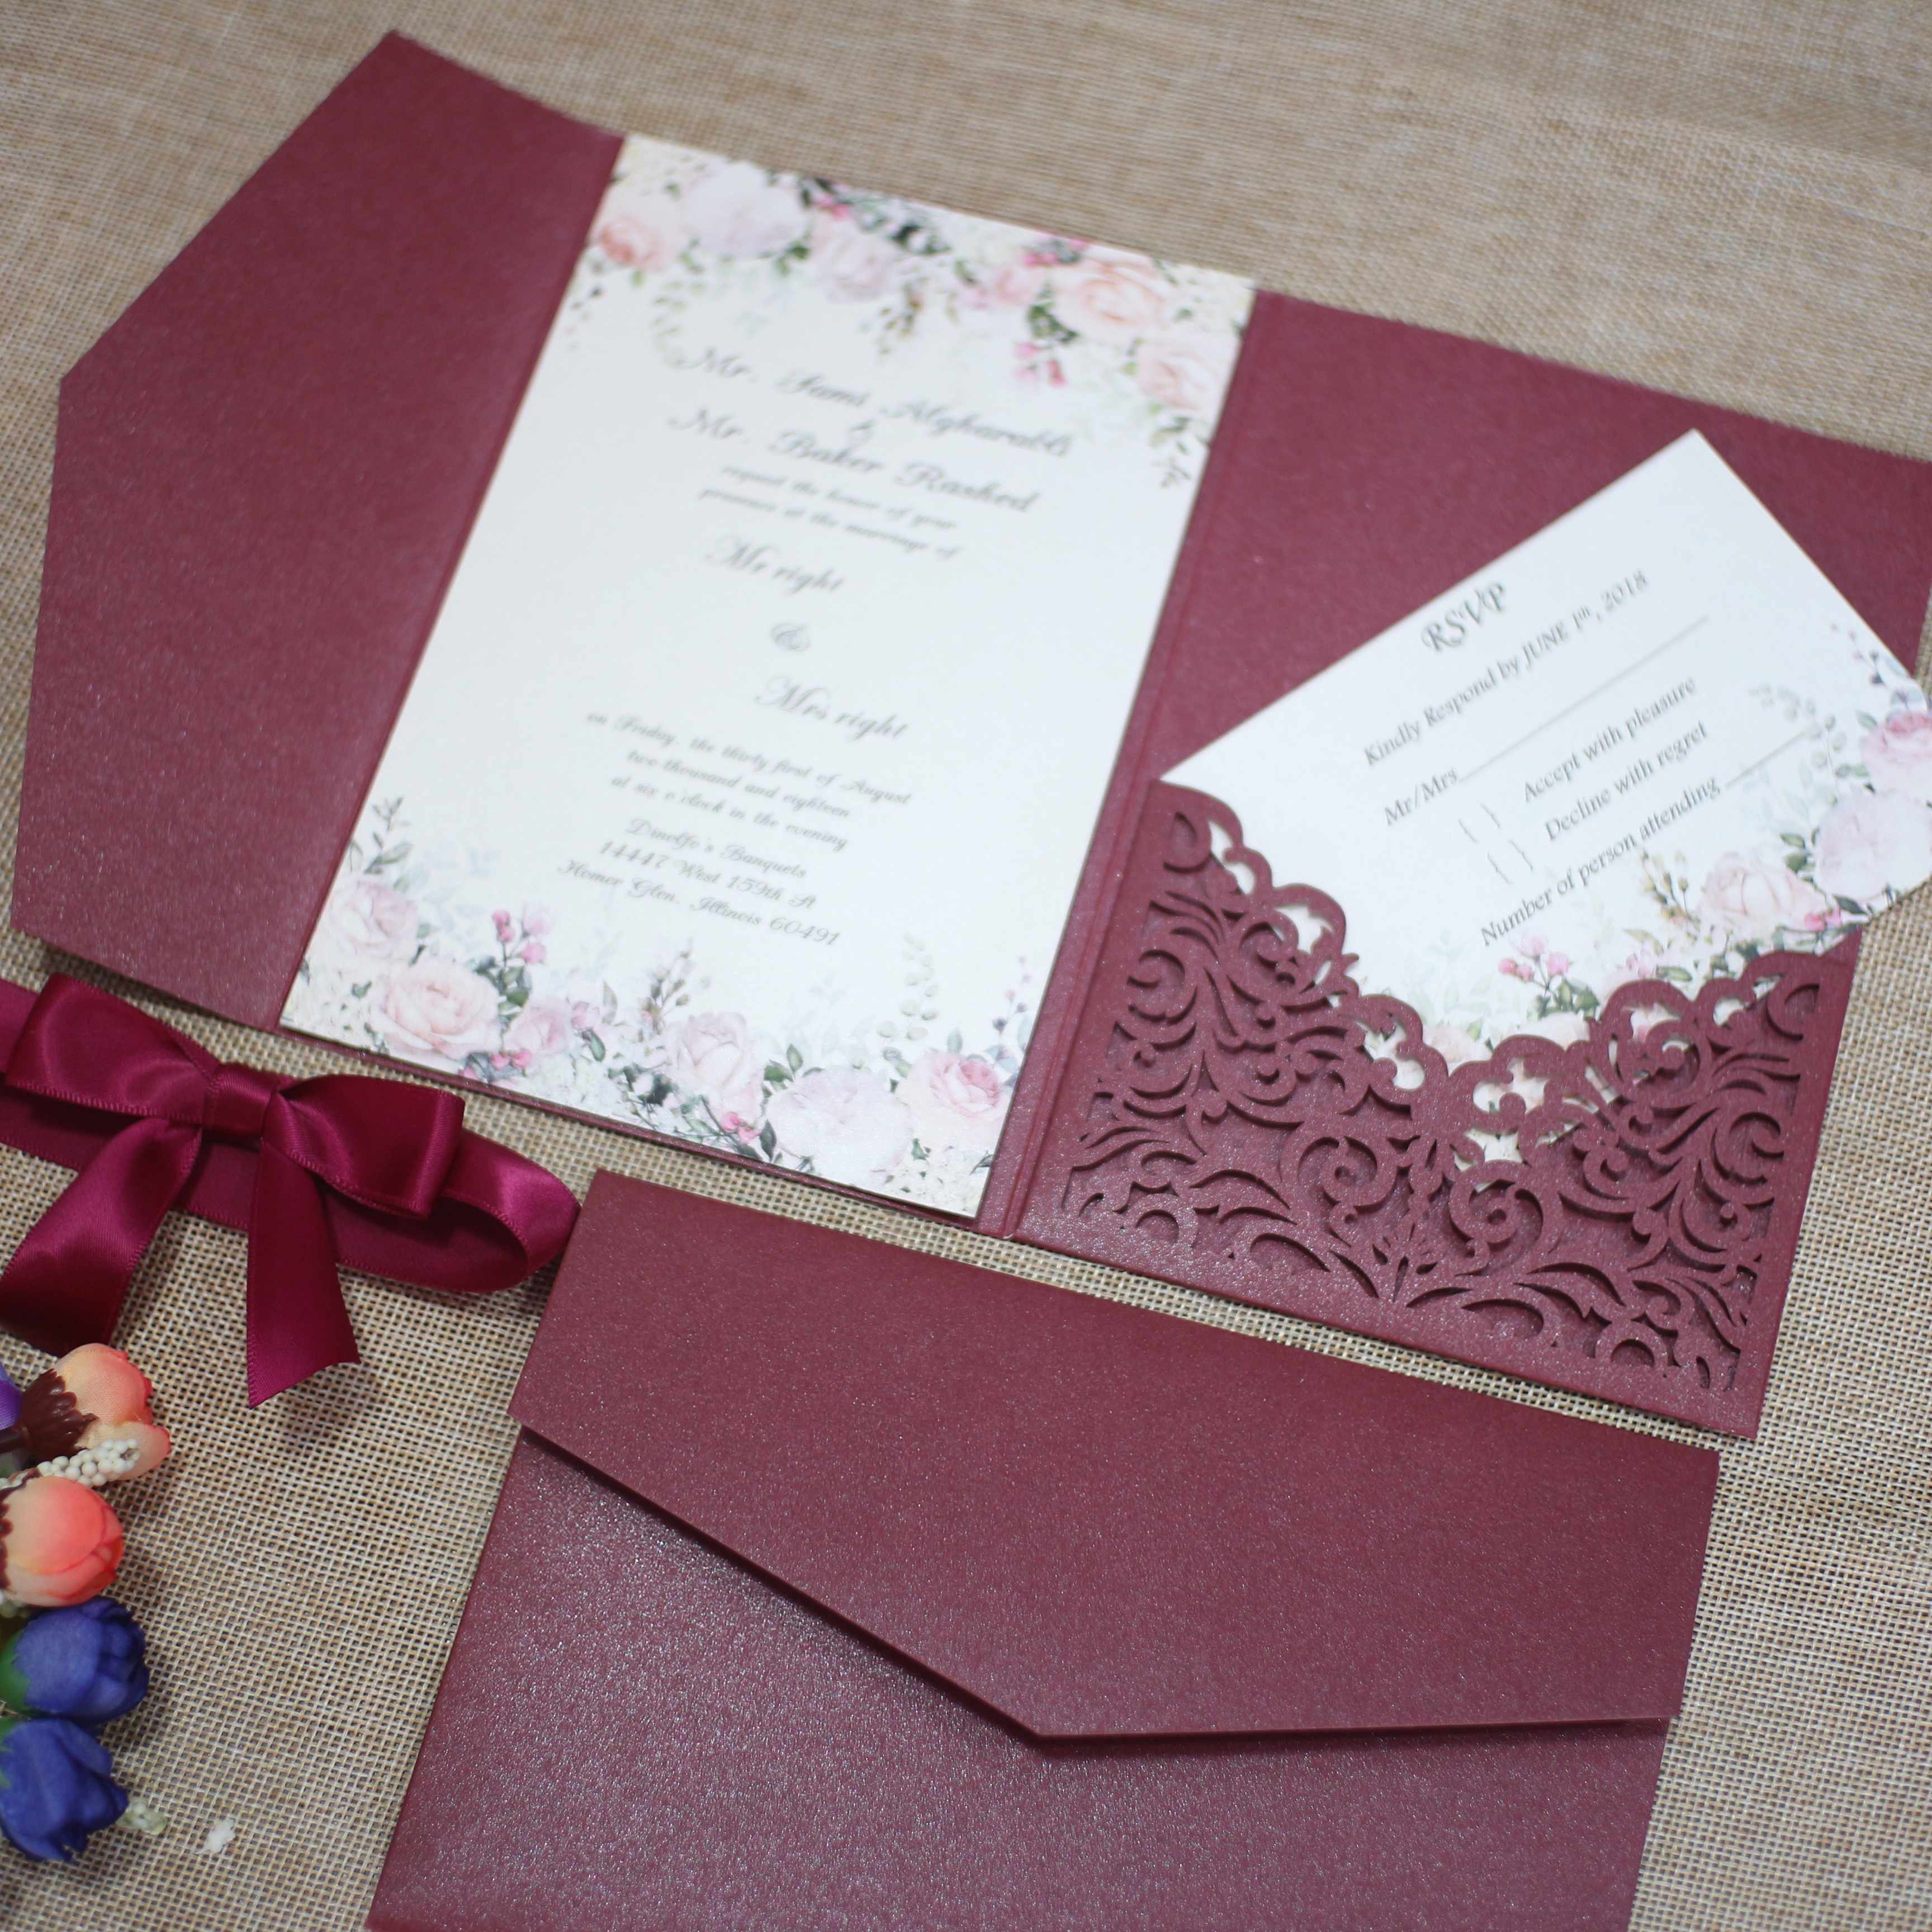 free shipping 2pcs Vine tri fold wedding invitation cards with envelope  ,insert, RSVP 3 fold laser cut pocket fold cards| | - AliExpress